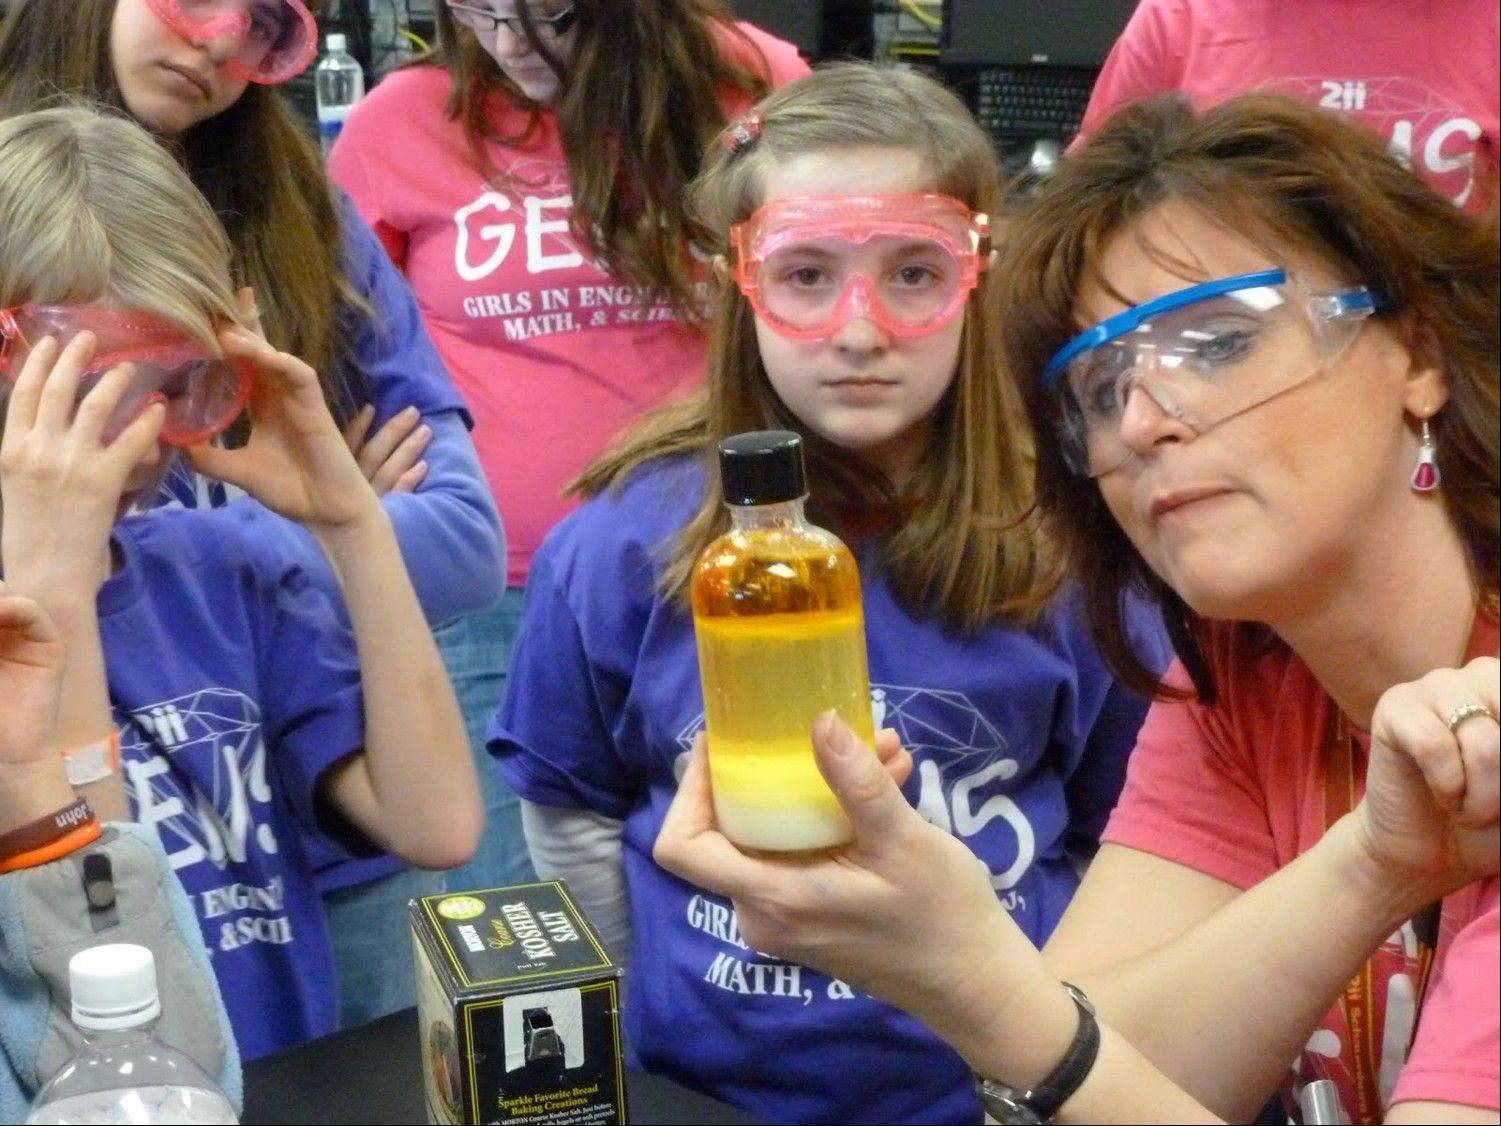 Sue Bober, a chemistry teacher at Schaumburg High School, works with girls at the GEMS conference.